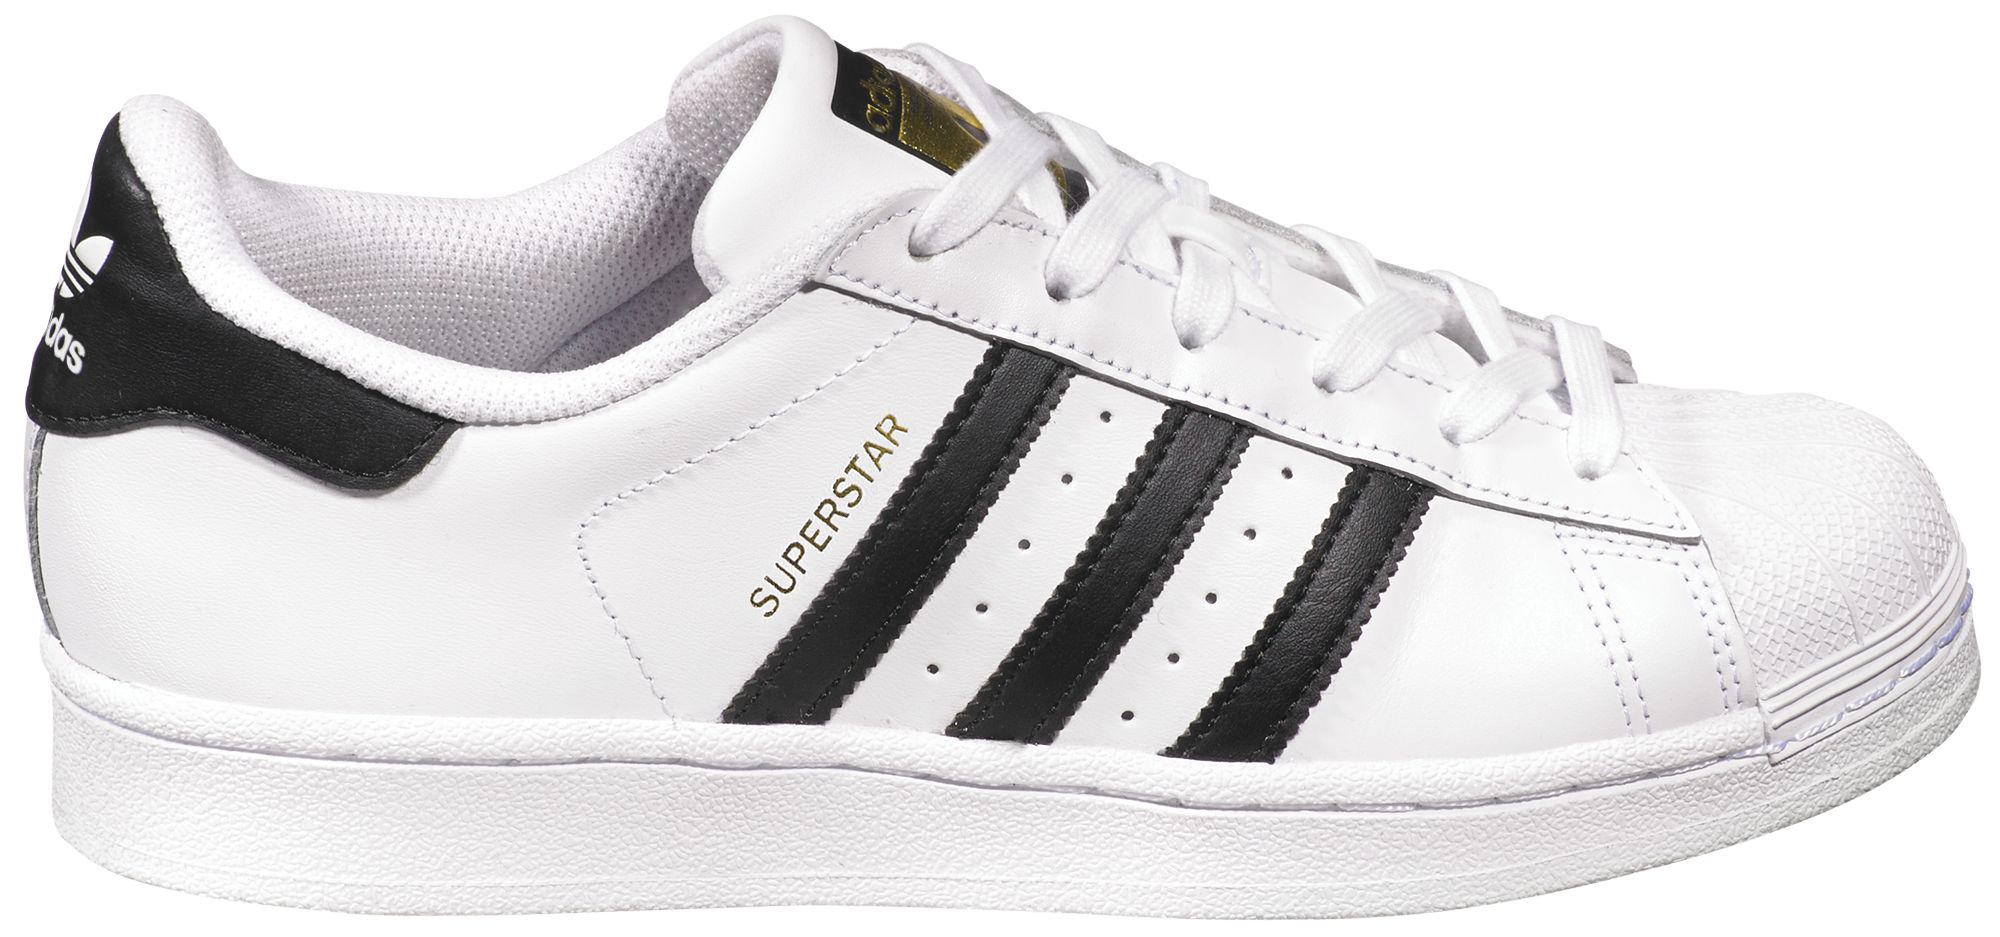 adidas Originals Women's Superstar Shoes